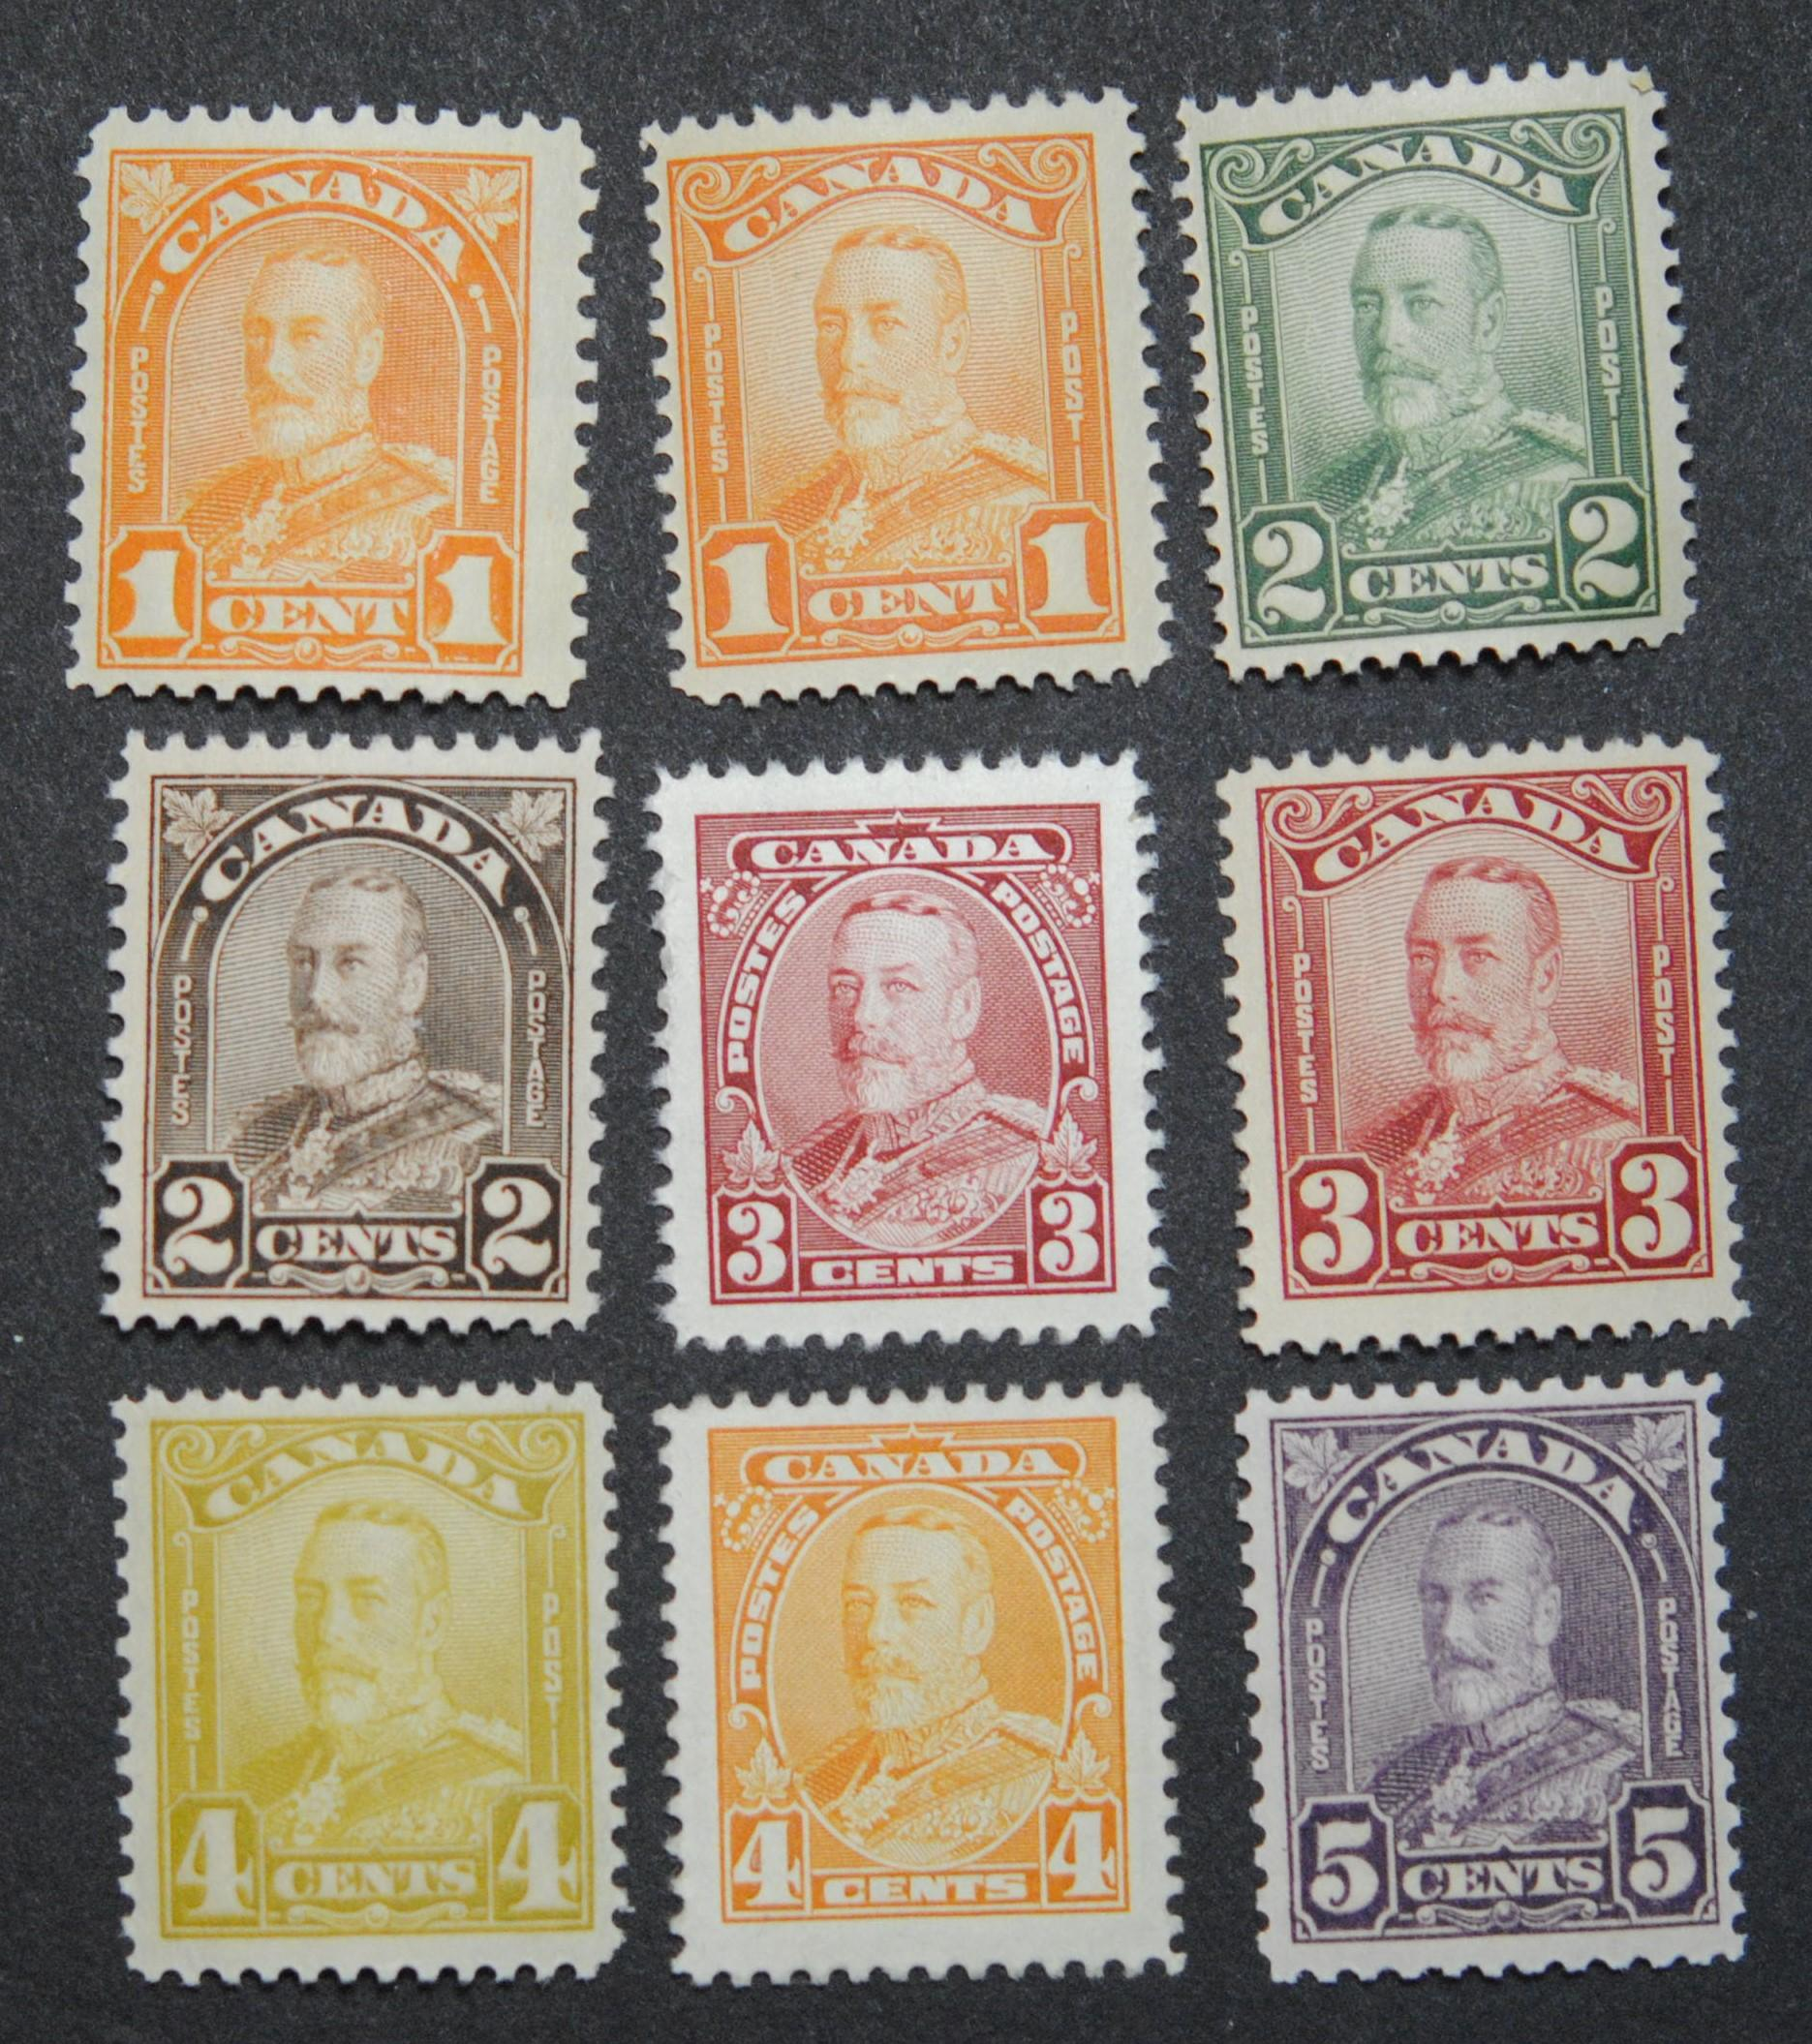 Canada Stamp Collection of 9 George V MNH